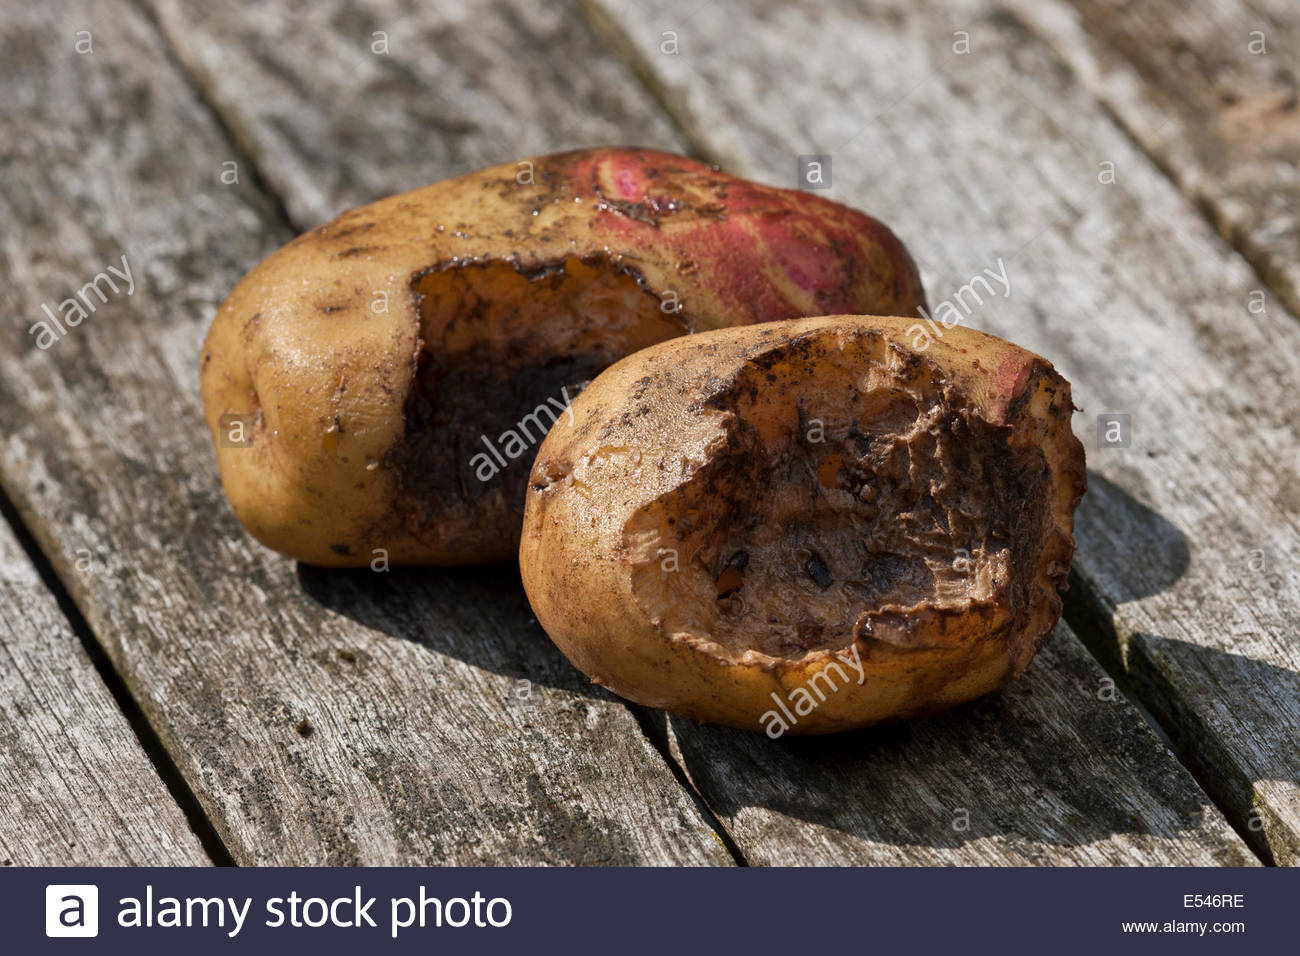 Rodent damage on potato tuber mouse mice rat eating digging problem kitchen garden plant - Stock Image